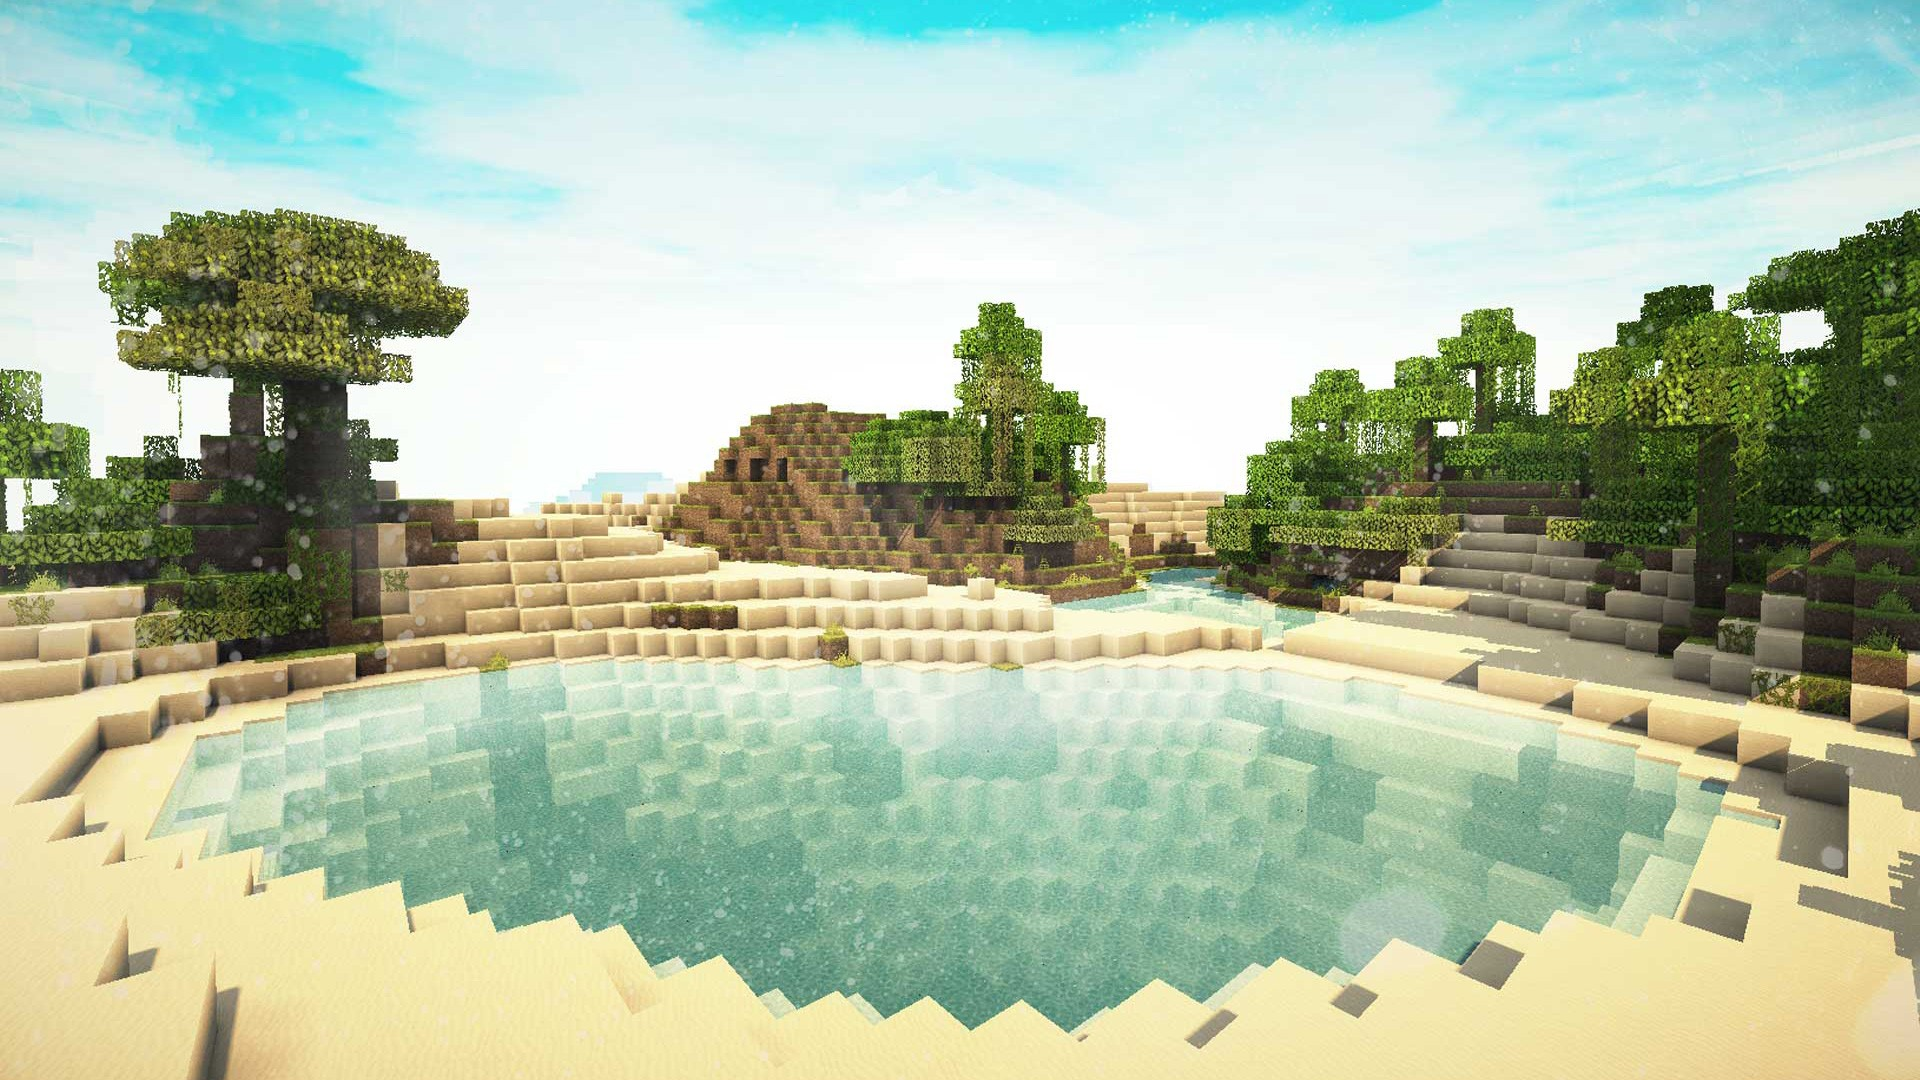 Minecraft Background Download Free Beautiful Backgrounds For